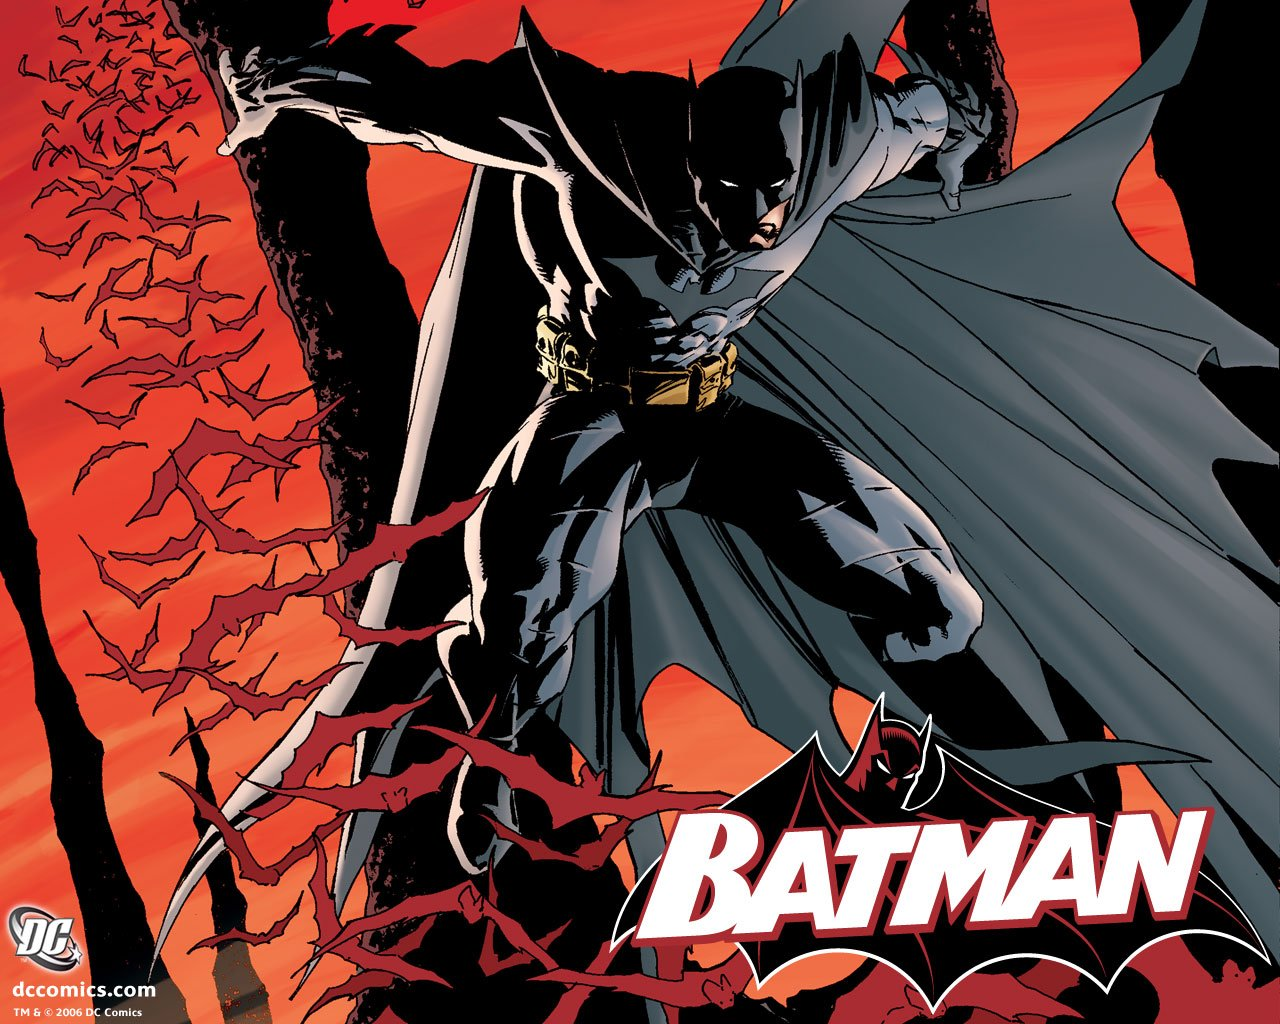 DC Comics desktop wallpaper Batman wallpapers 1280x1024